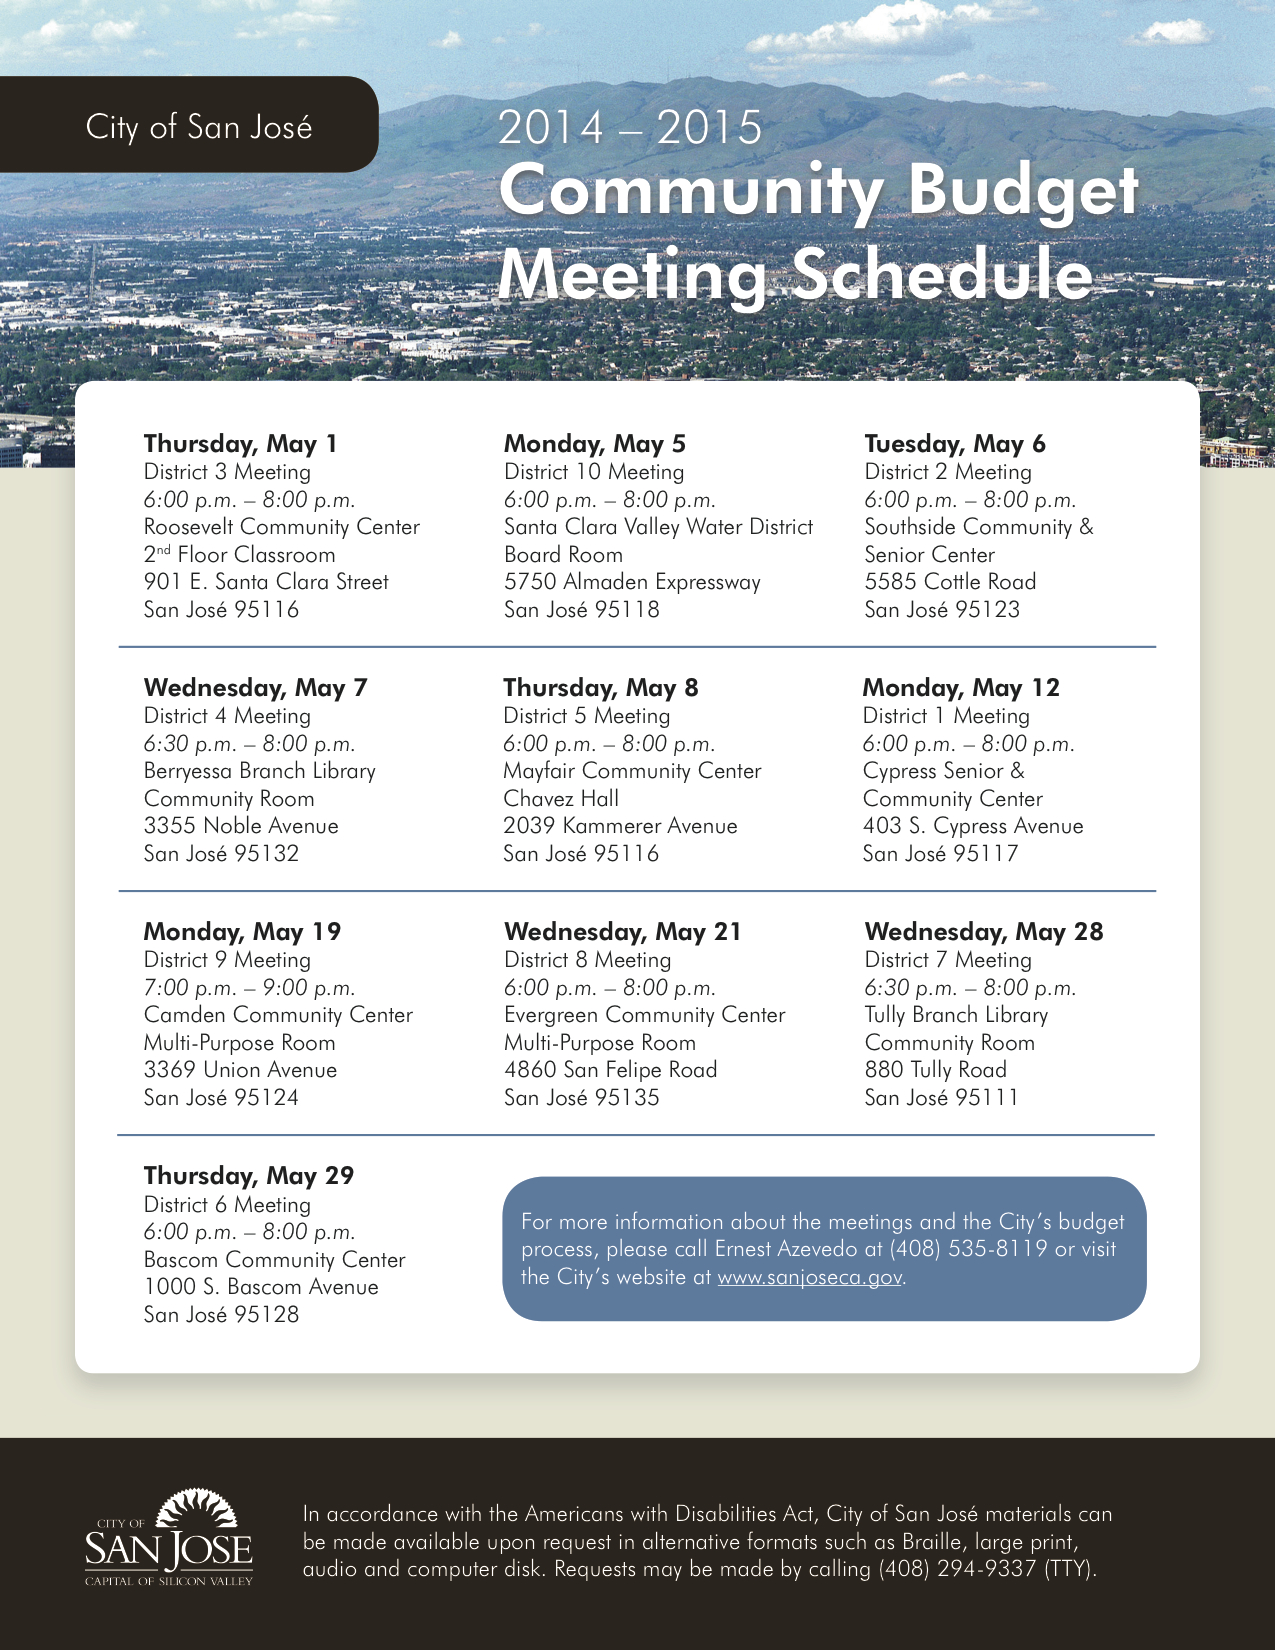 2014-2015_Community_Budget_Meetings_Schedule.jpg